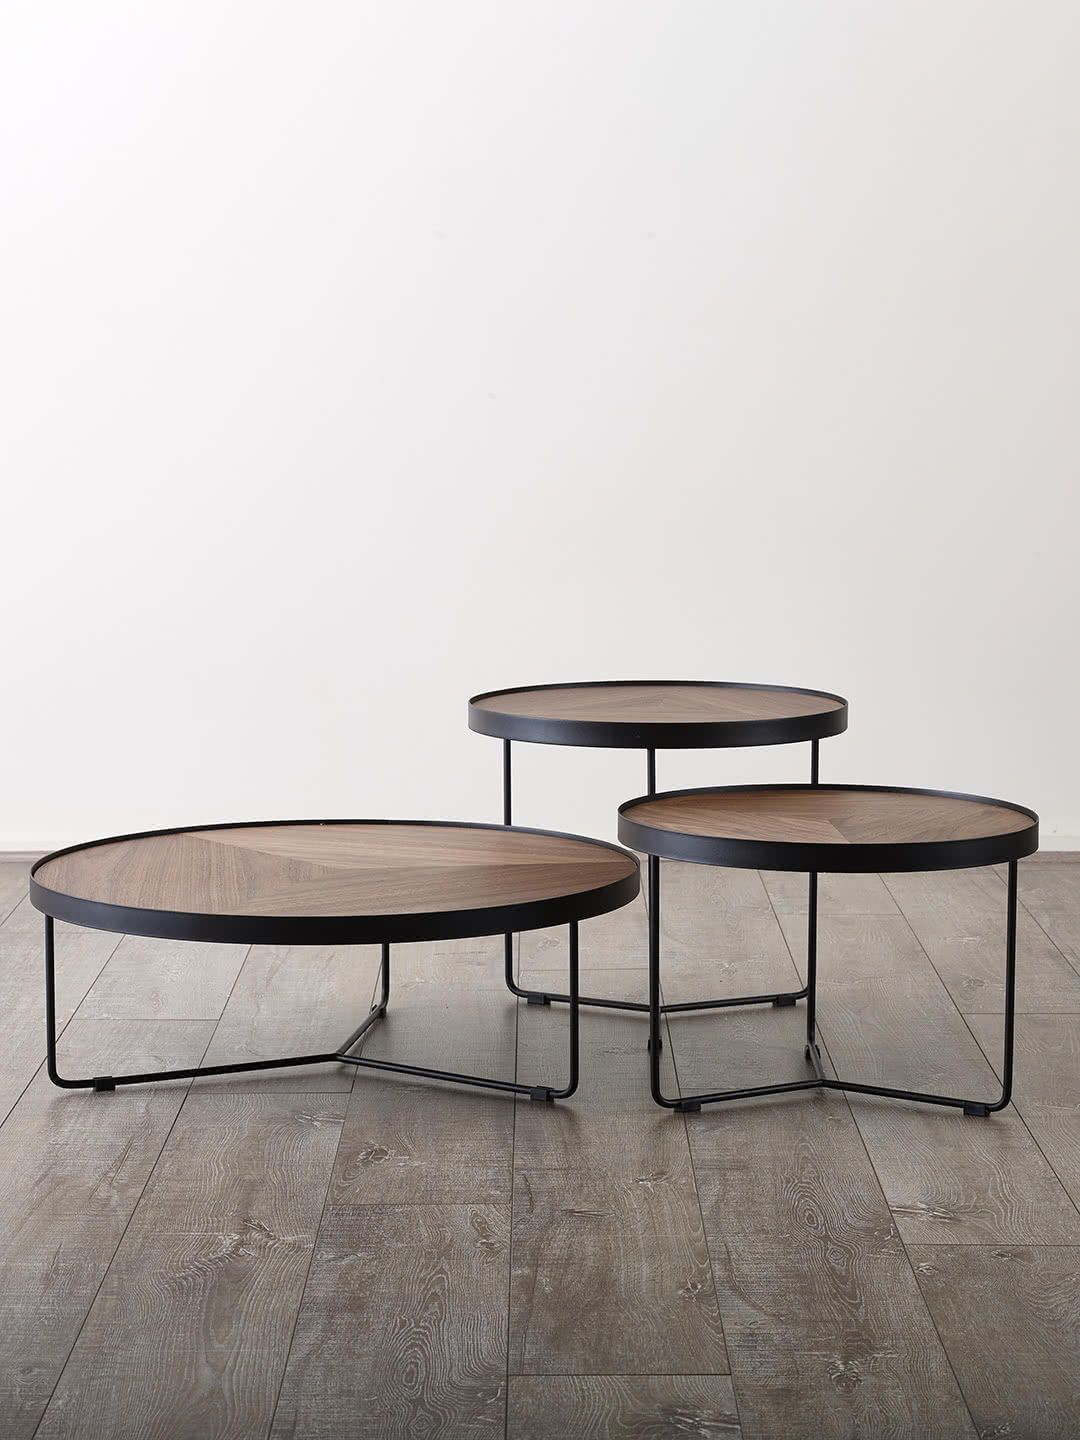 Chloe Side Table The Rug Collection Nesting Coffee Tables Coffee Table Furniture Side Tables [ 1440 x 1080 Pixel ]